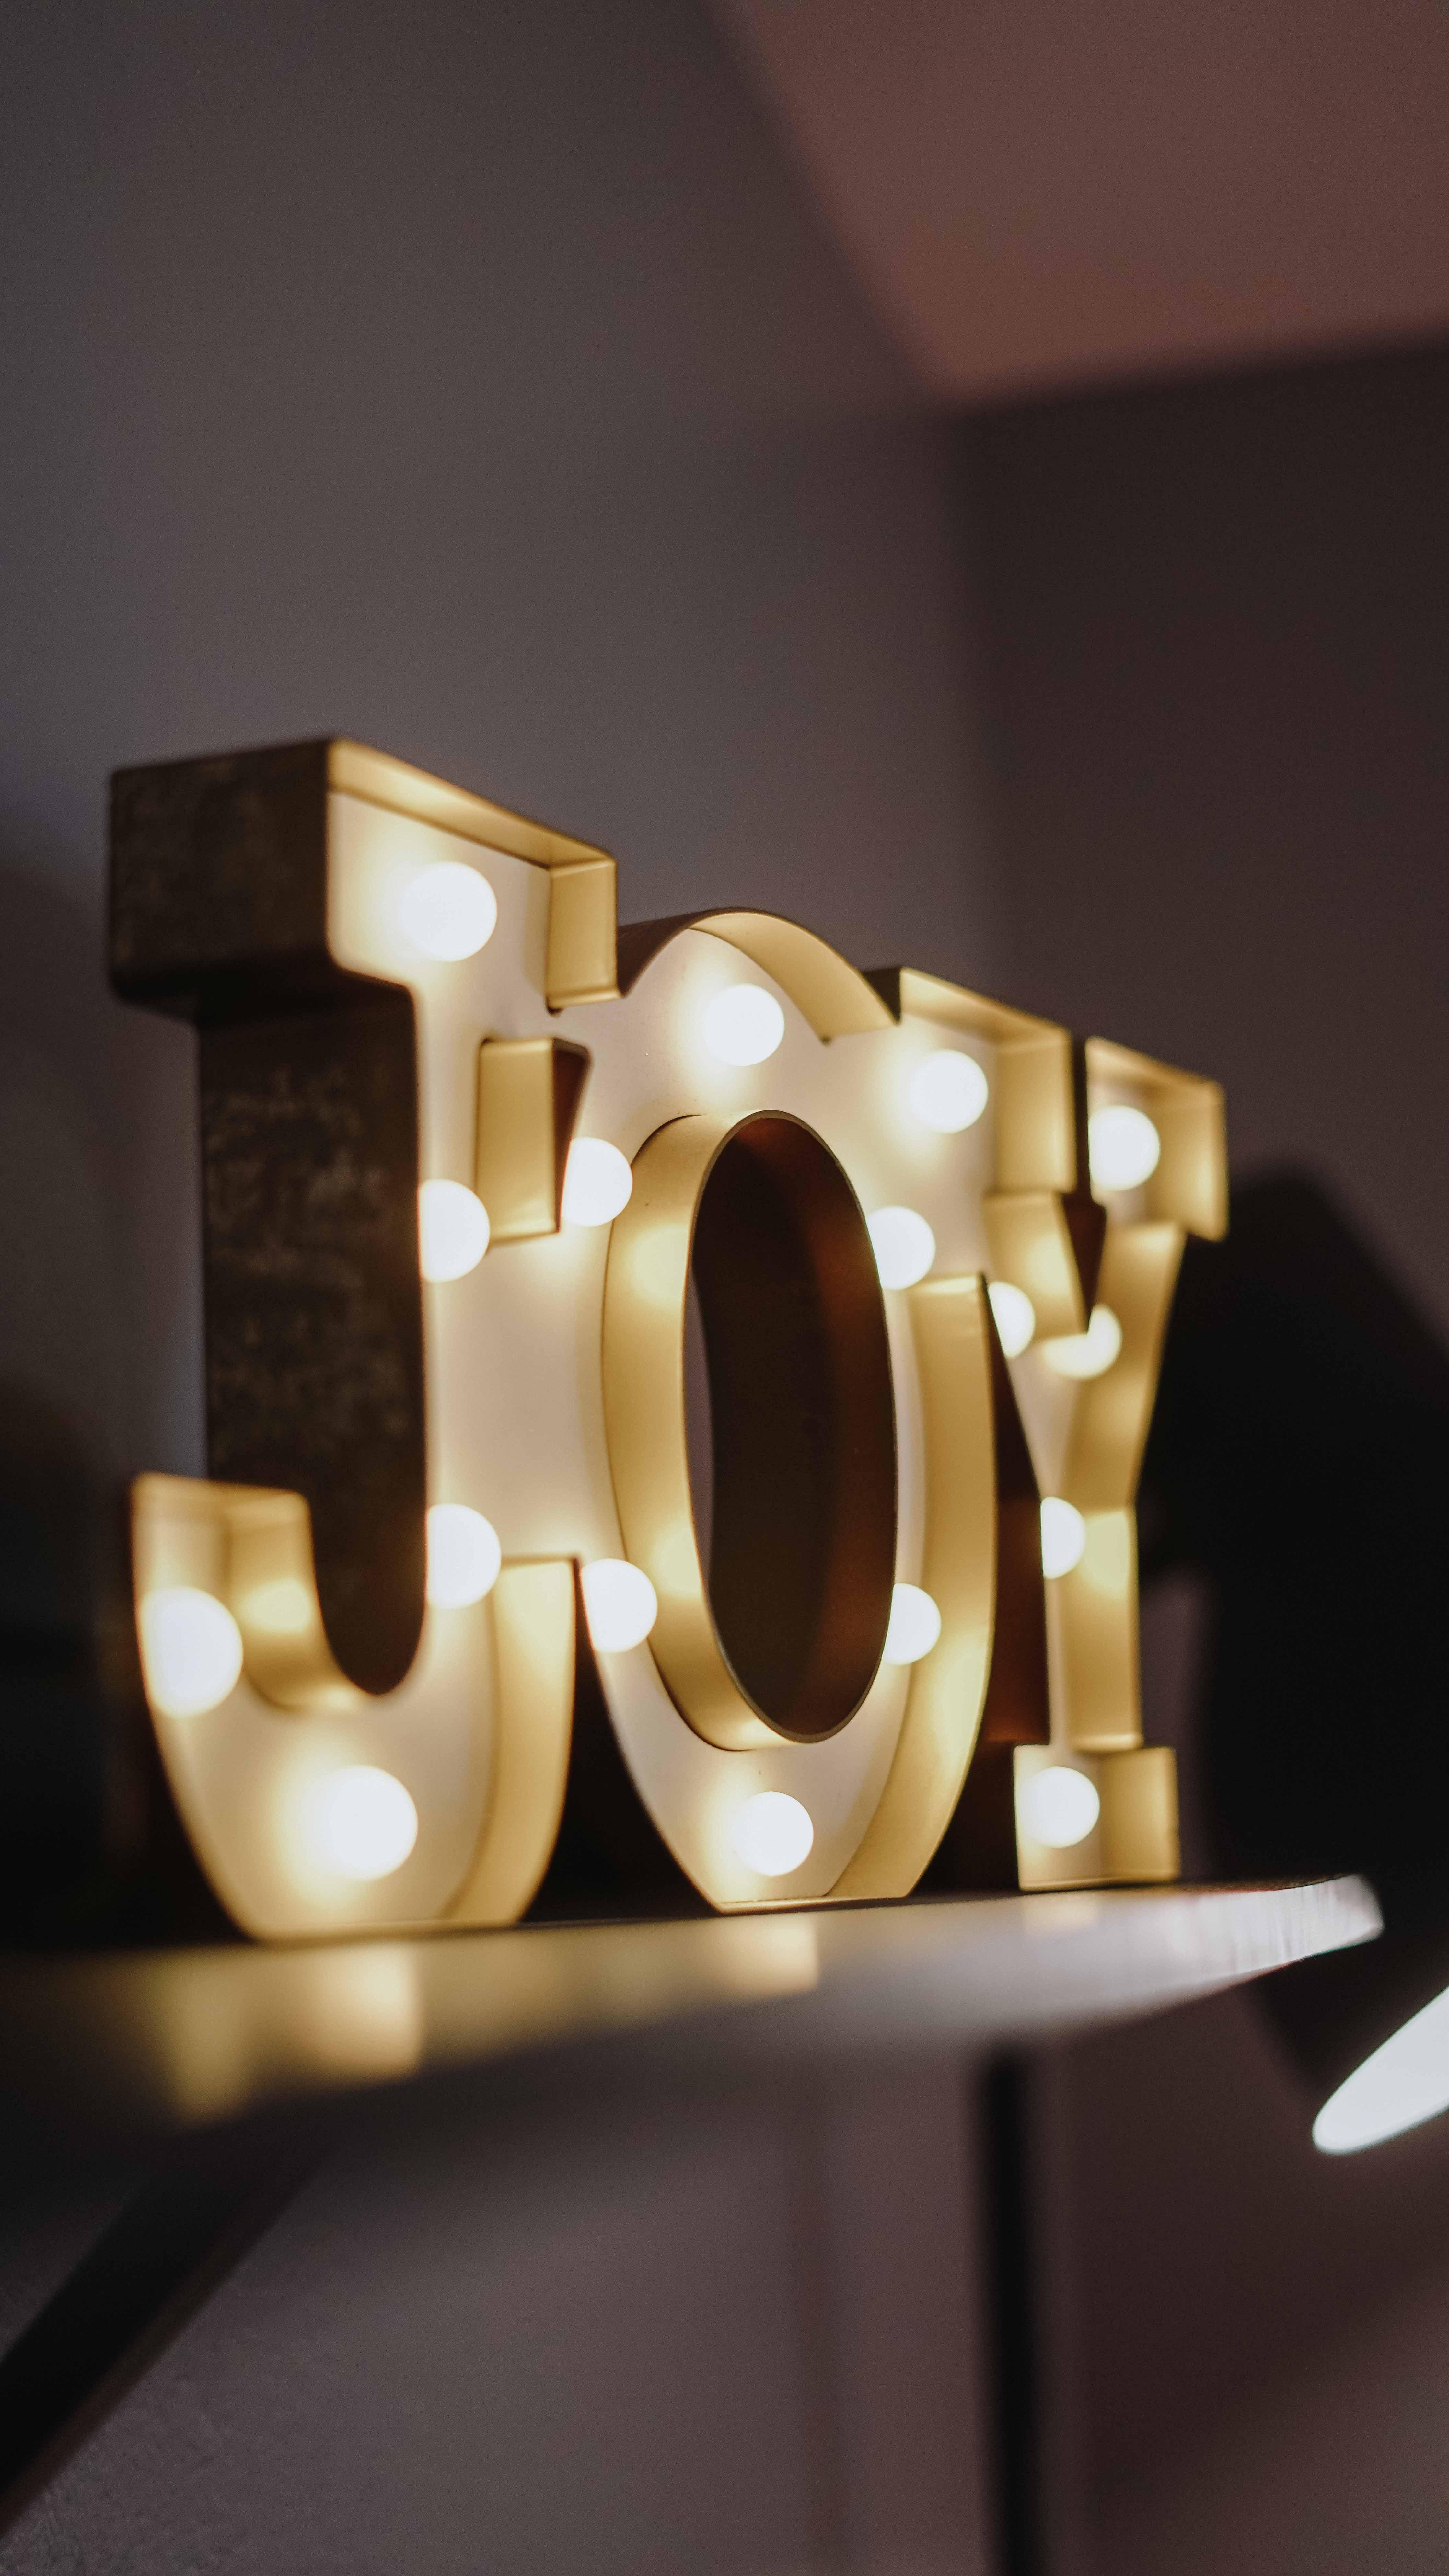 free photo selective focus photography of joy free standing letters